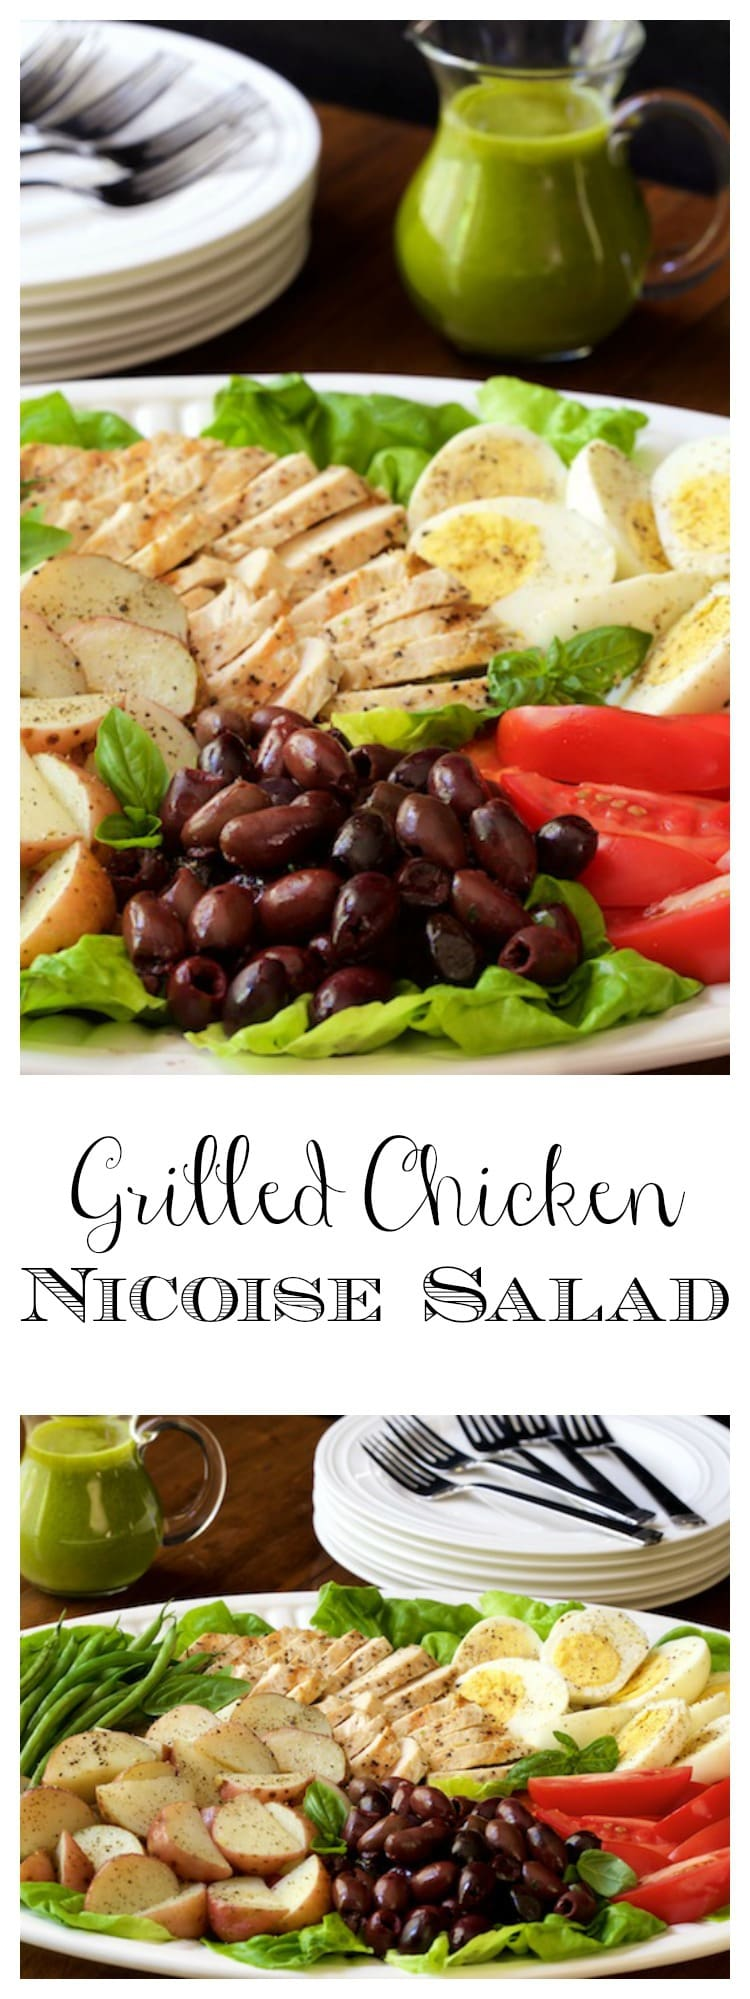 Grilled Chicken Nicoise Salad - a light, fresh, healthy meal from the grill! And the Basil Anchovy Dressing takes it to a new level of deliciousness!